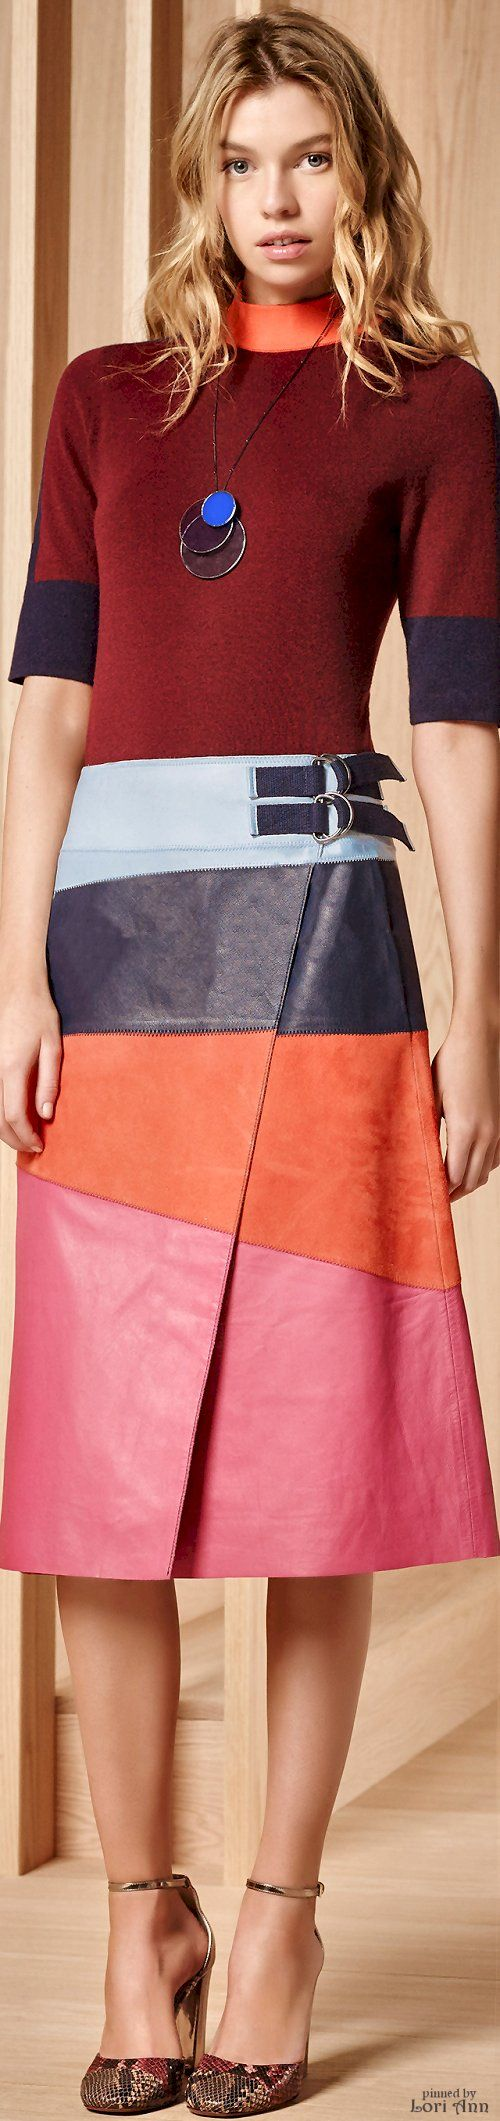 Tory Burch Pre-Fall 2016 women fashion outfit clothing style apparel @roressclothes closet ideas